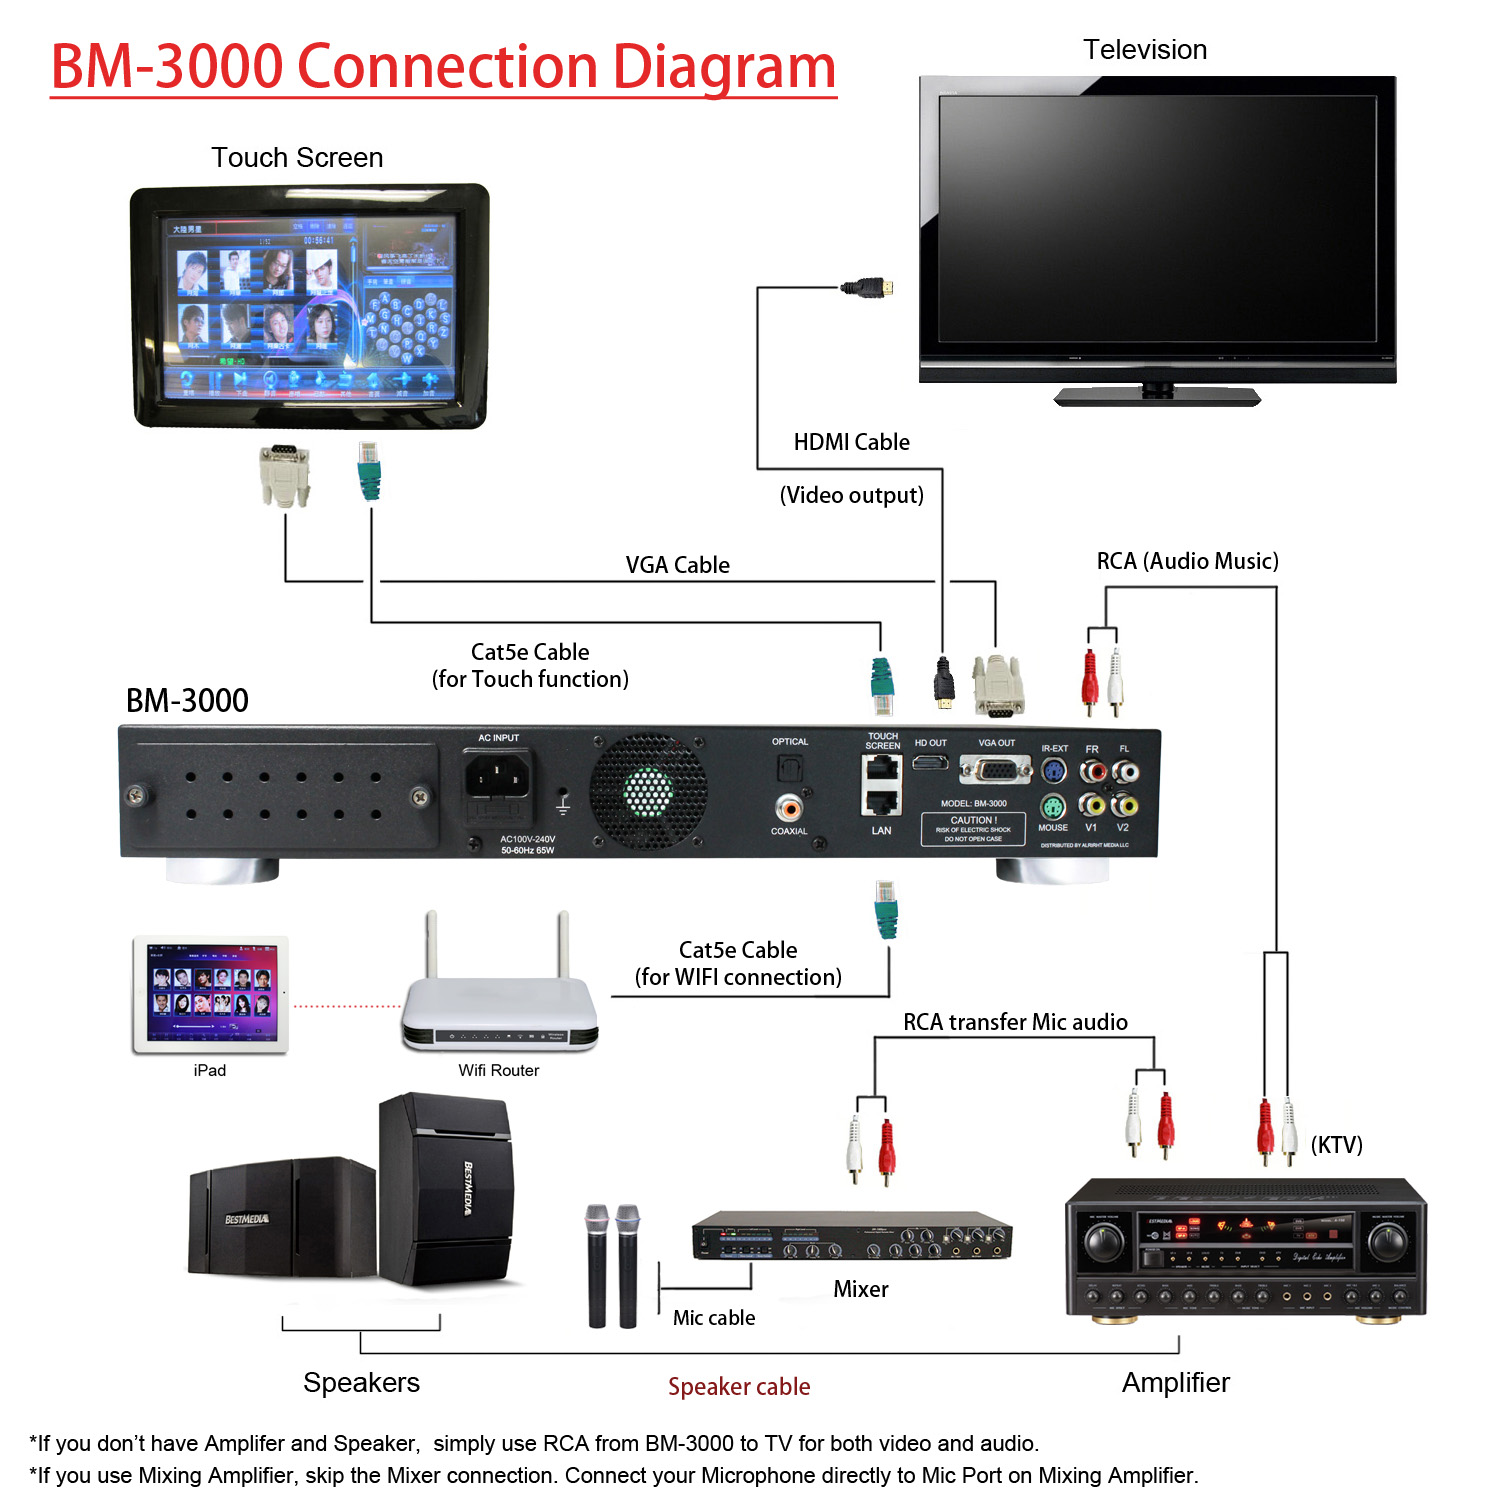 Karaoke Machine Wiring Diagram - Wiring Diagram Structure on karaoke business, karaoke art, karaoke graphic, karaoke animation, karaoke software,